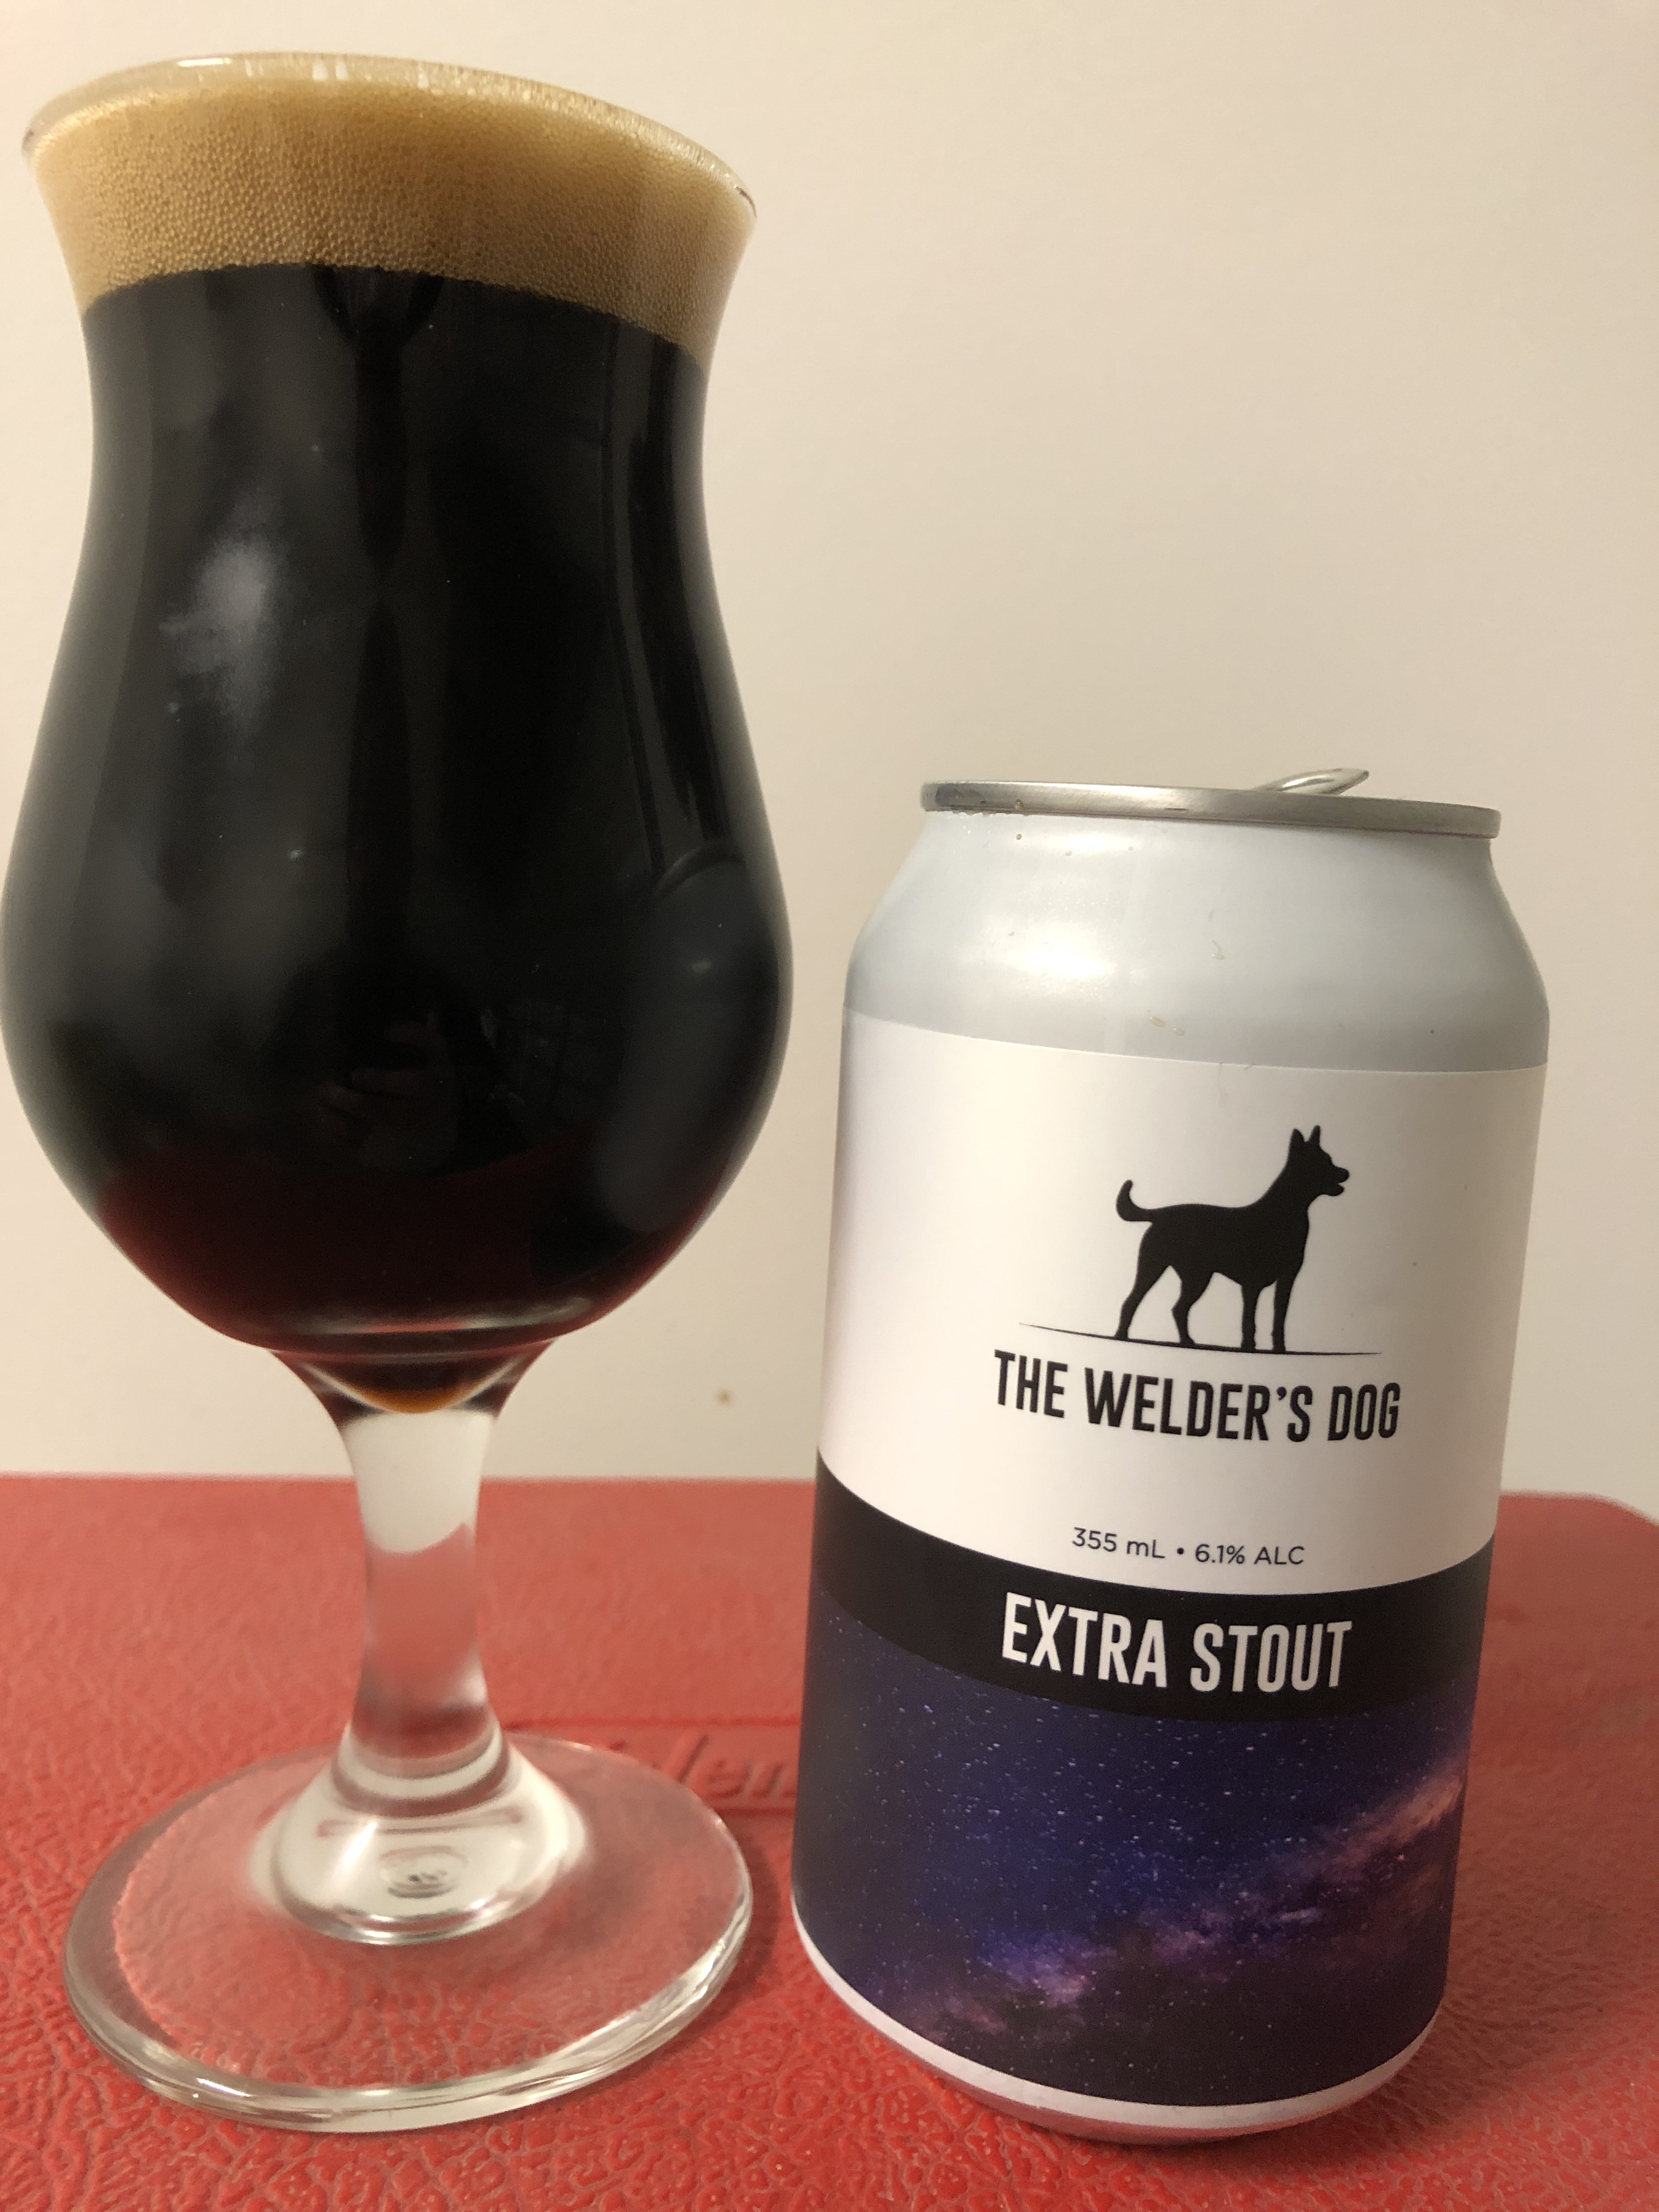 The Welders Dog Extra Stout